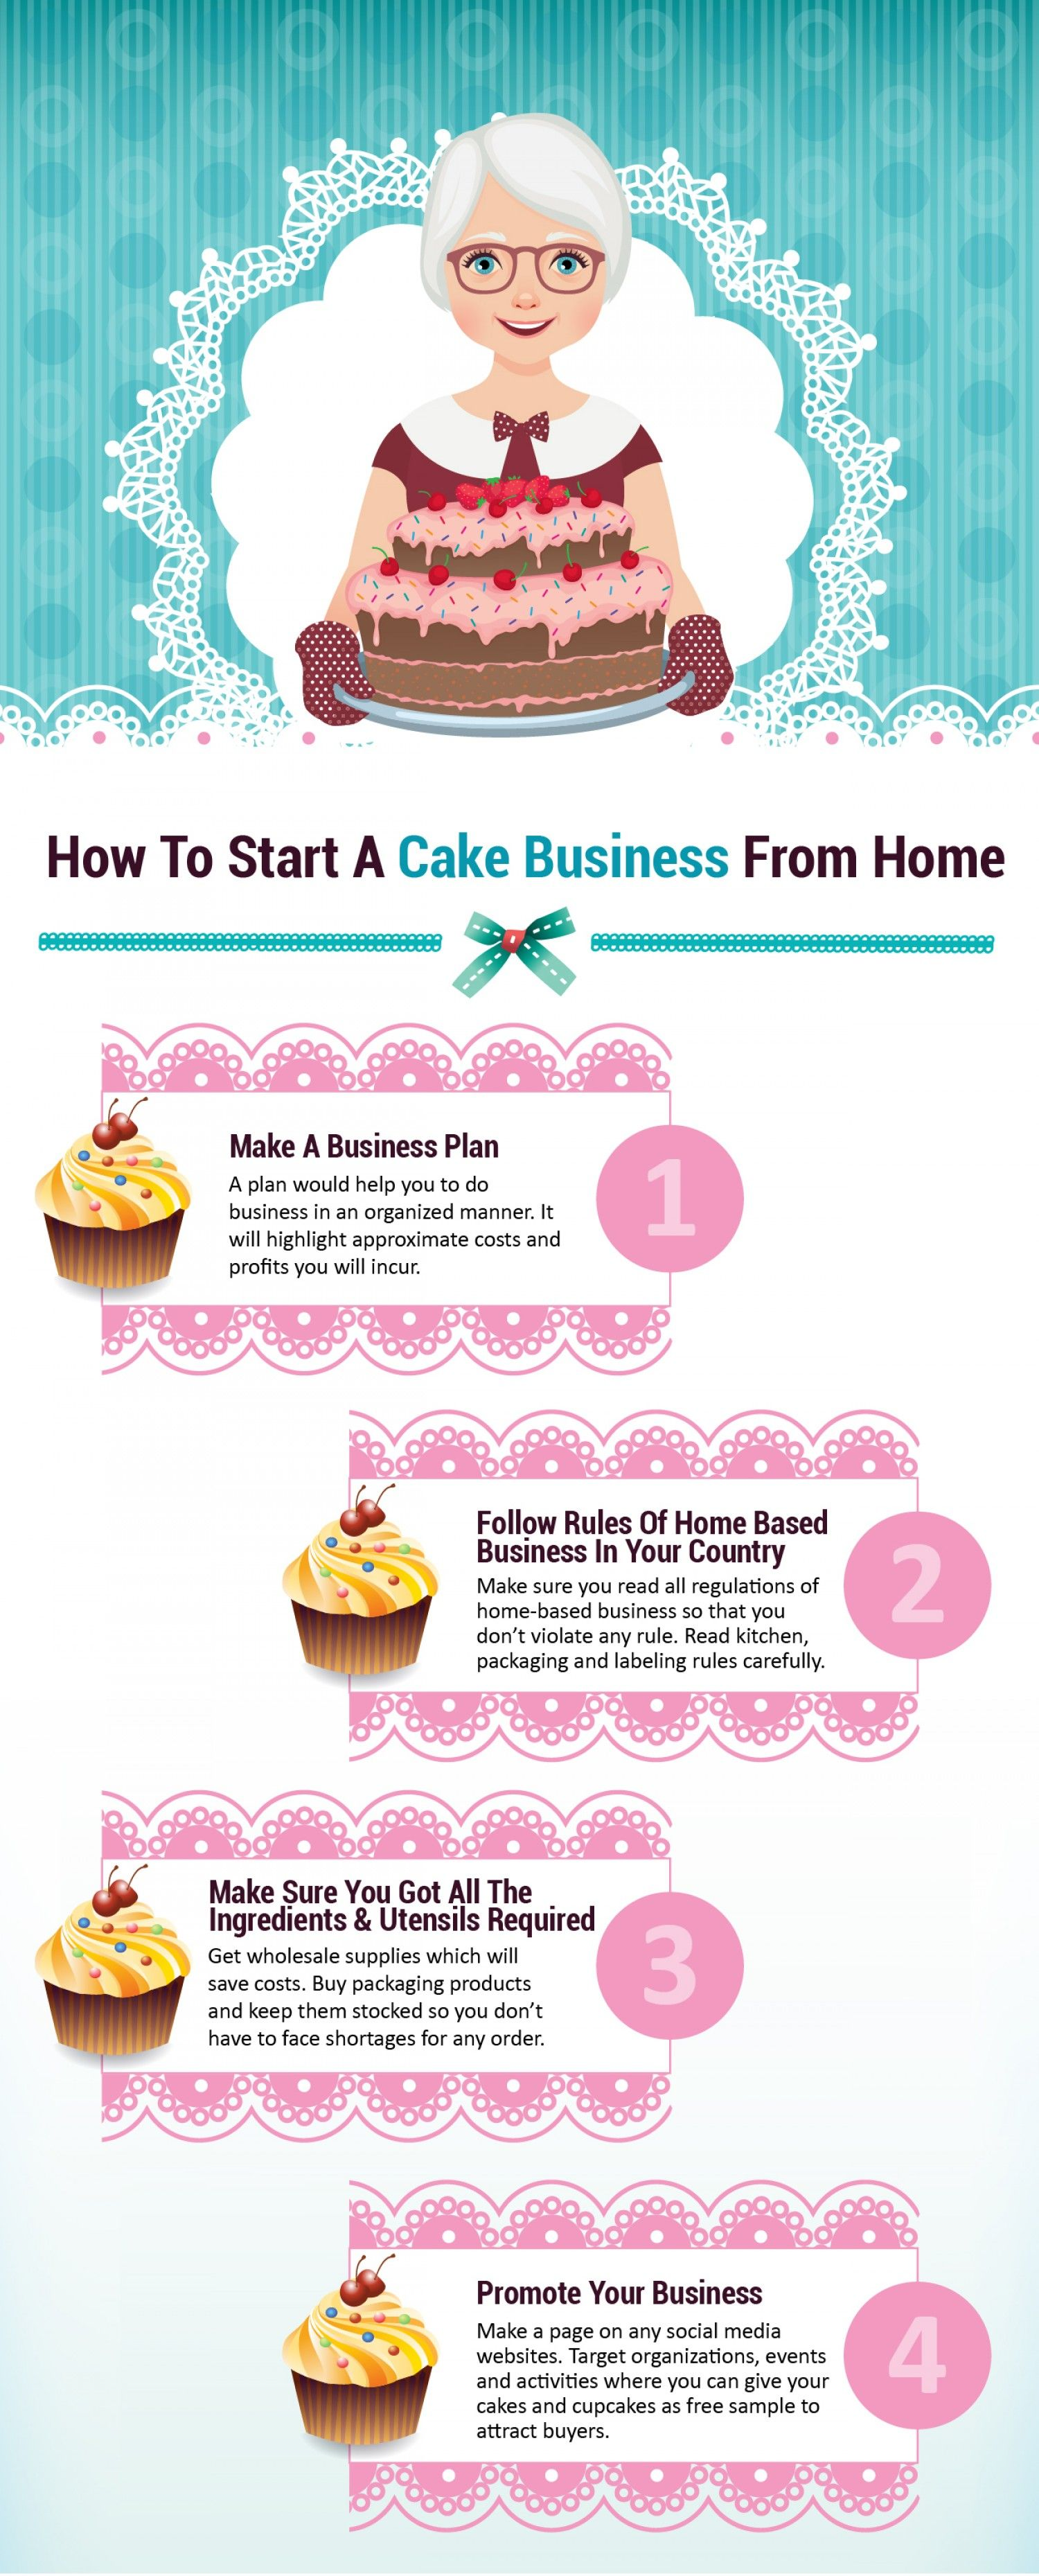 31 Catchy and Cute Cake and Cupcake Business Names